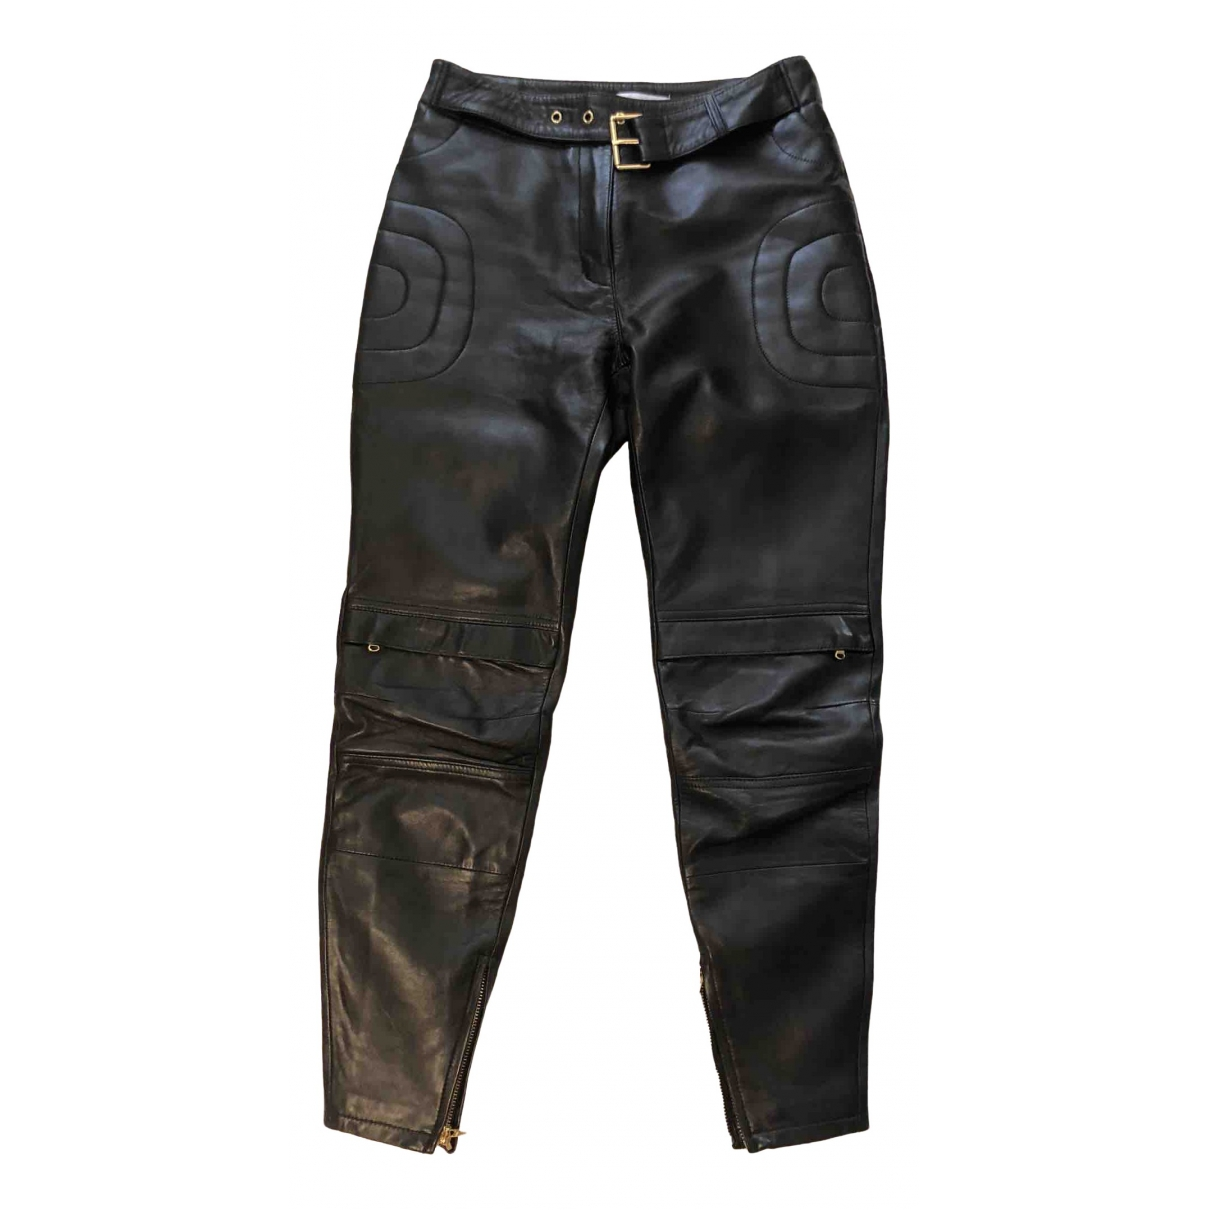 Moschino For H&m \N Black Leather Trousers for Women 34 FR